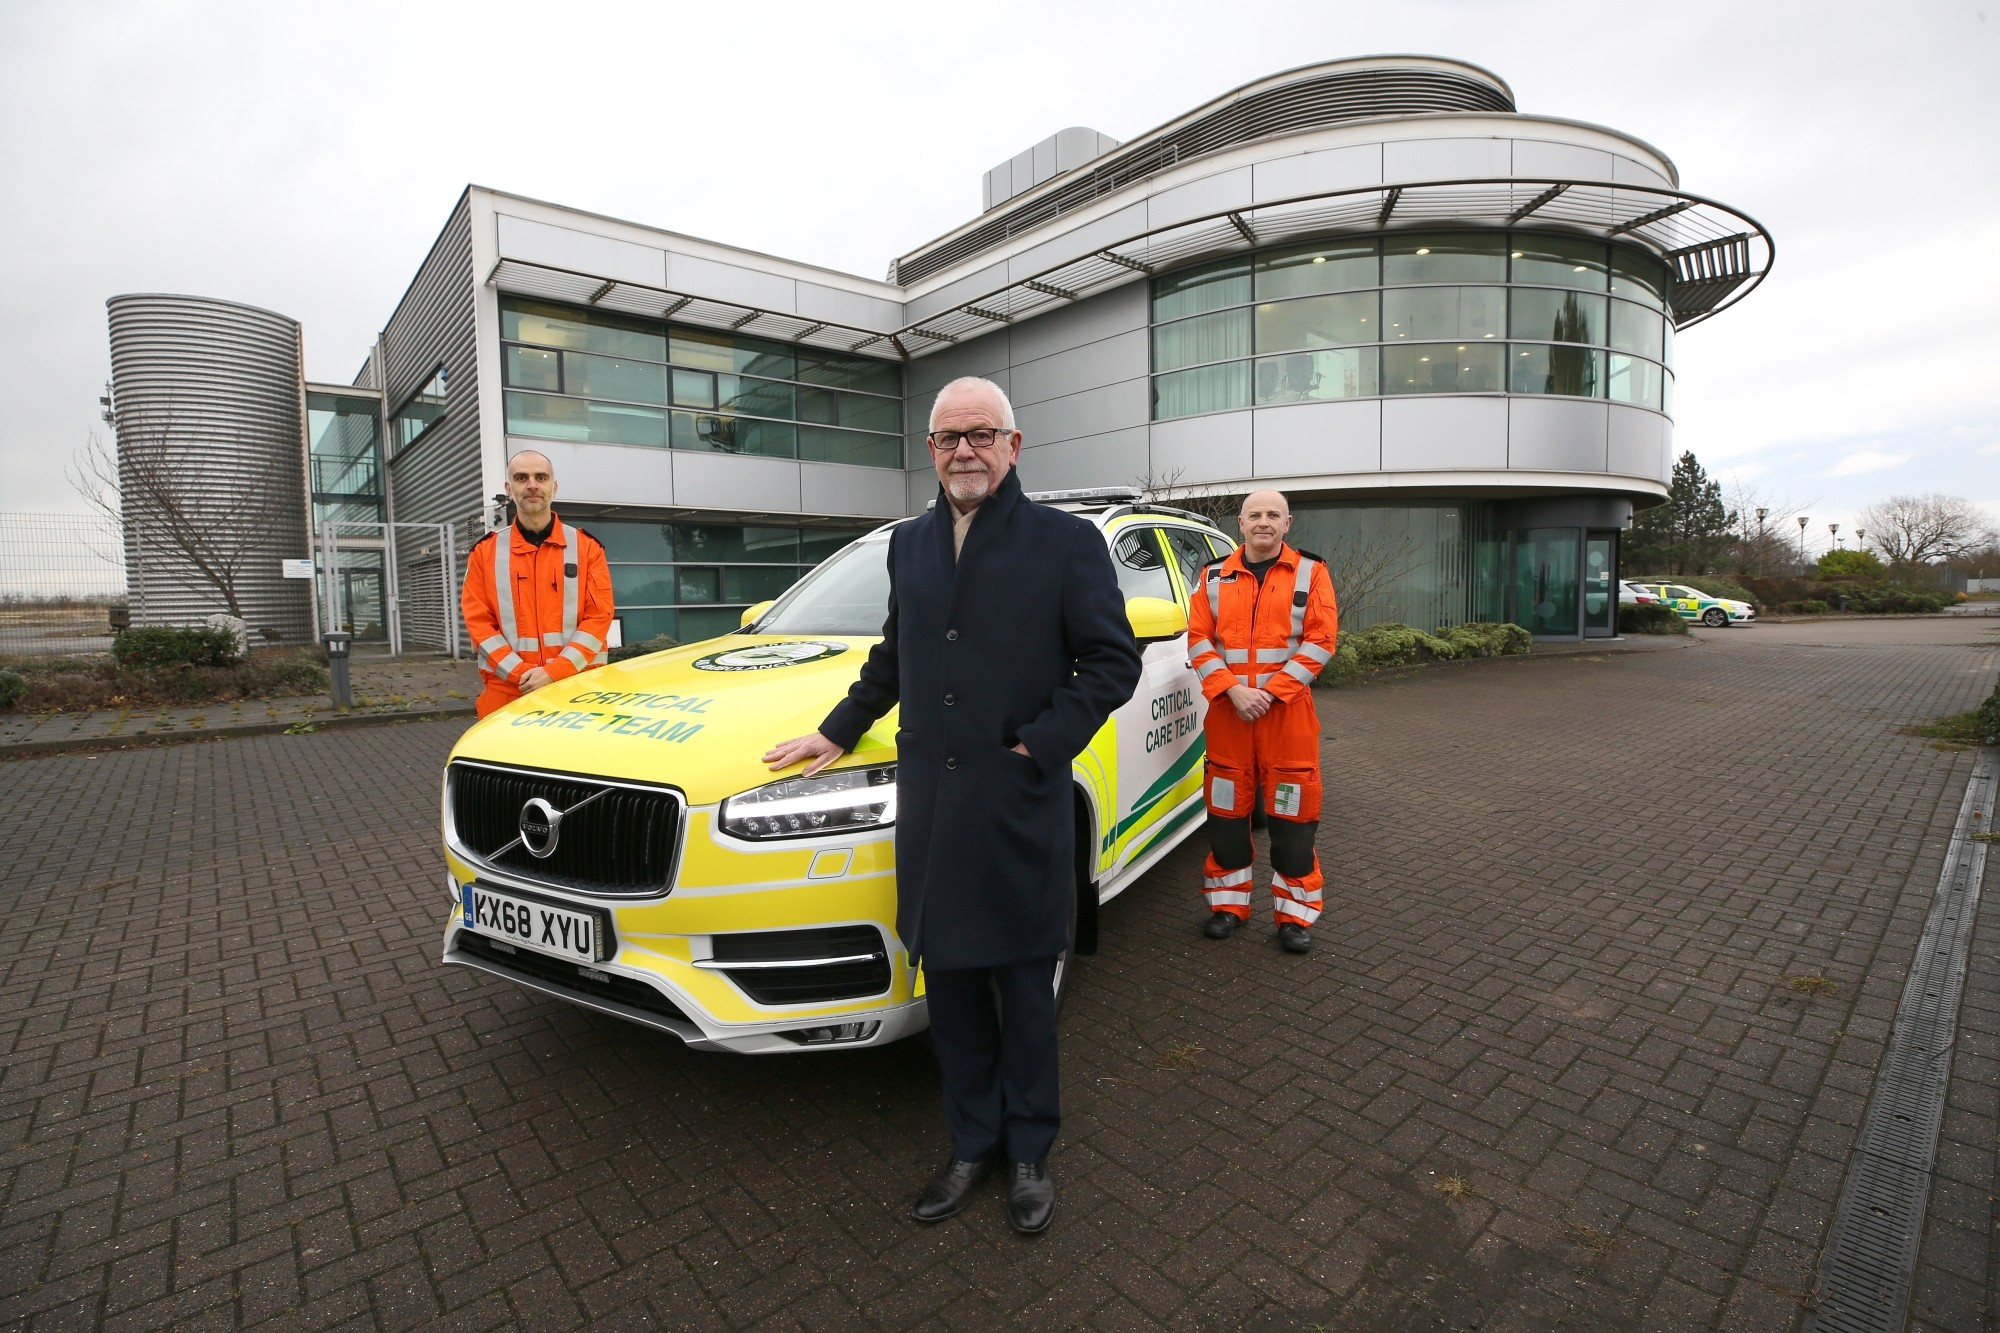 New Base for Great North Air Ambulance Service